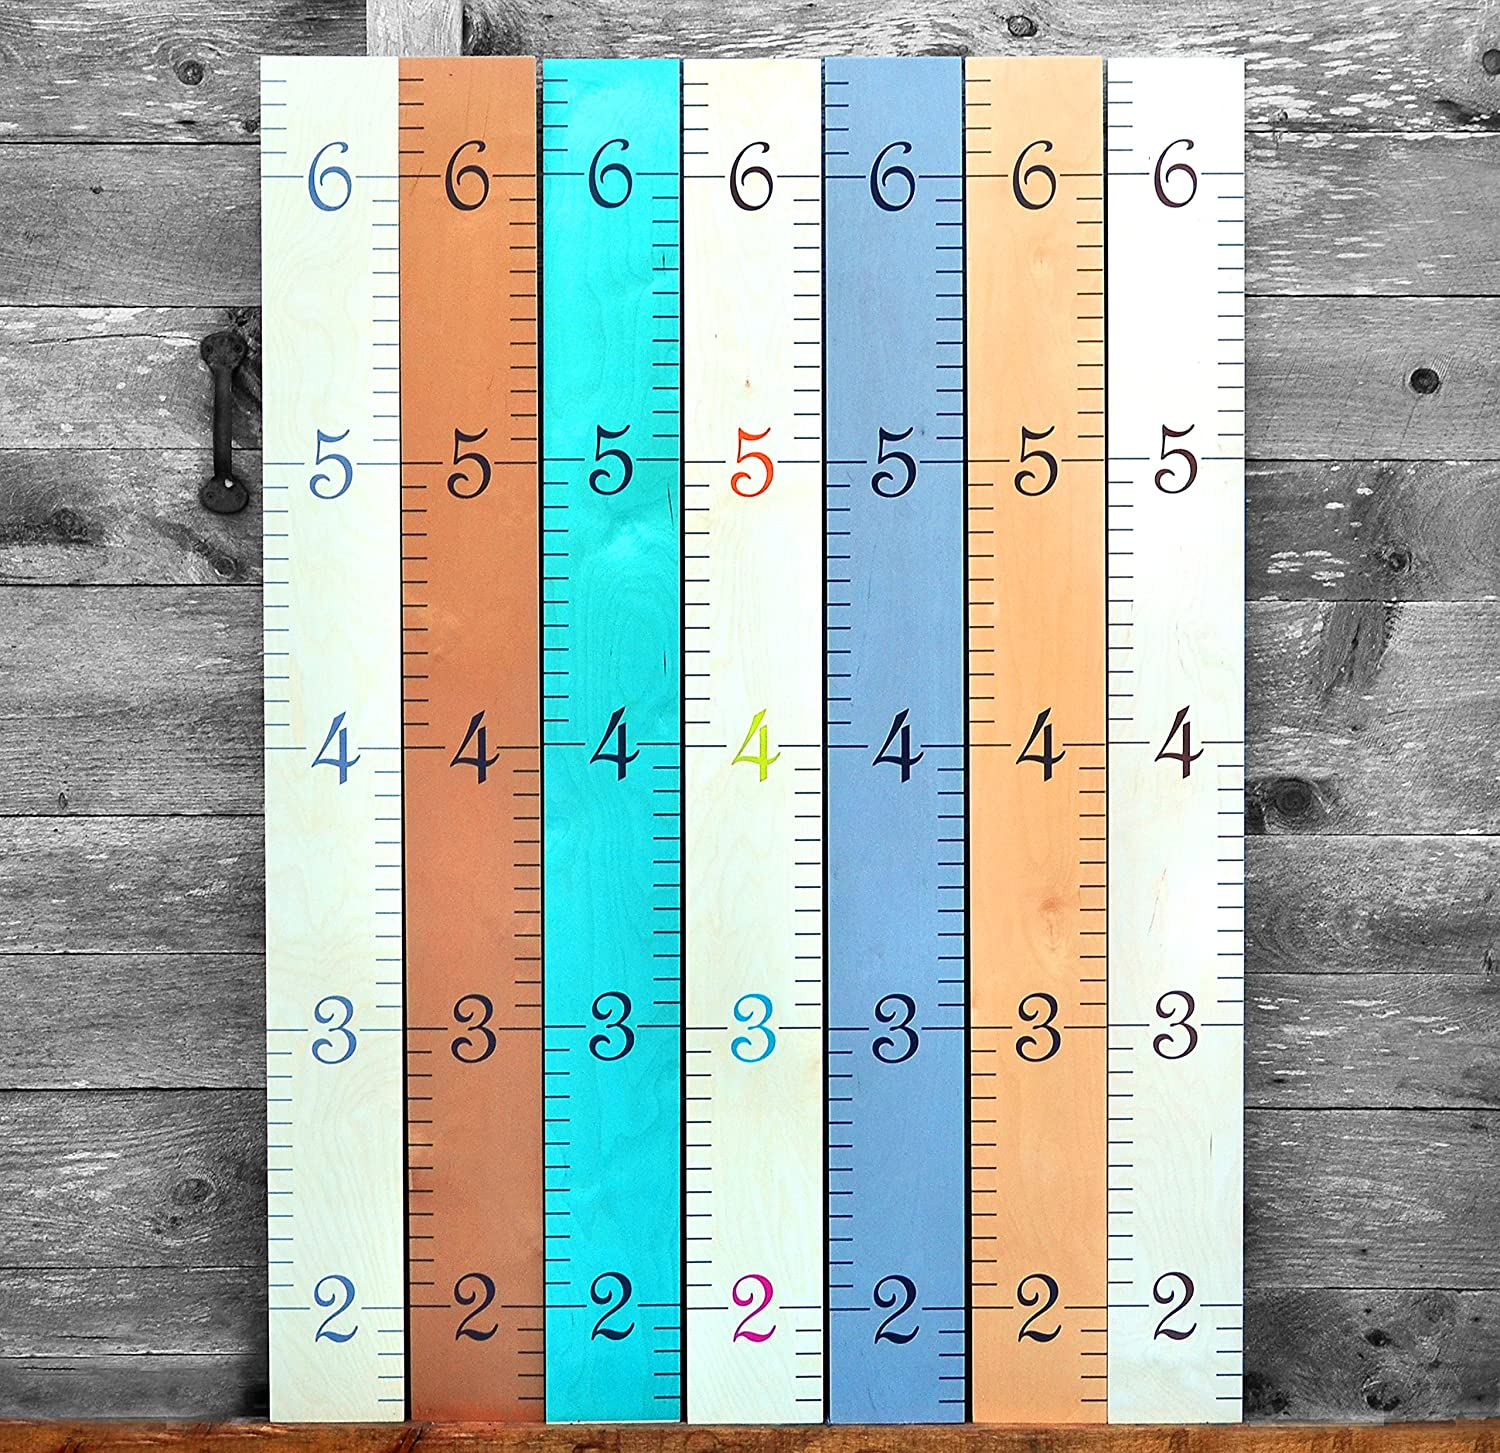 Amazon growth chart art hanging wooden height growth chart amazon growth chart art hanging wooden height growth chart to measure baby child grandchild naked birch ruler with multicolored numerals wall nvjuhfo Choice Image